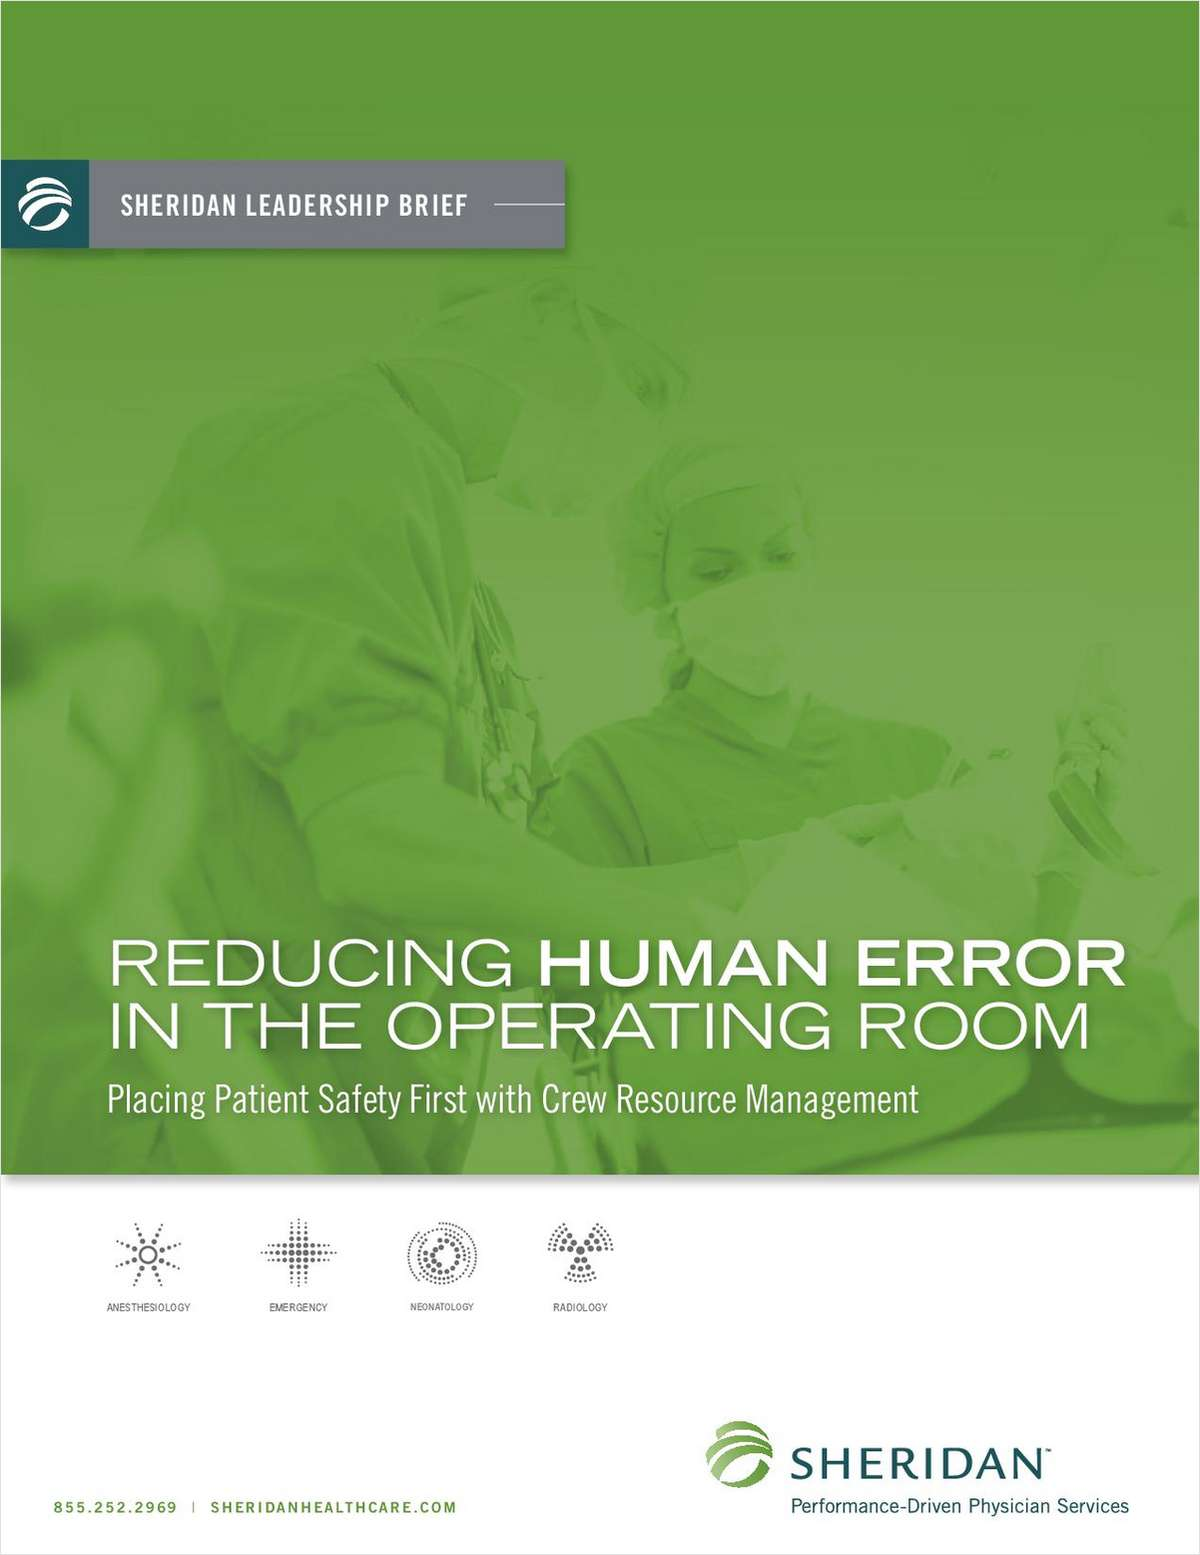 Reducing Human Error in the Operating Room